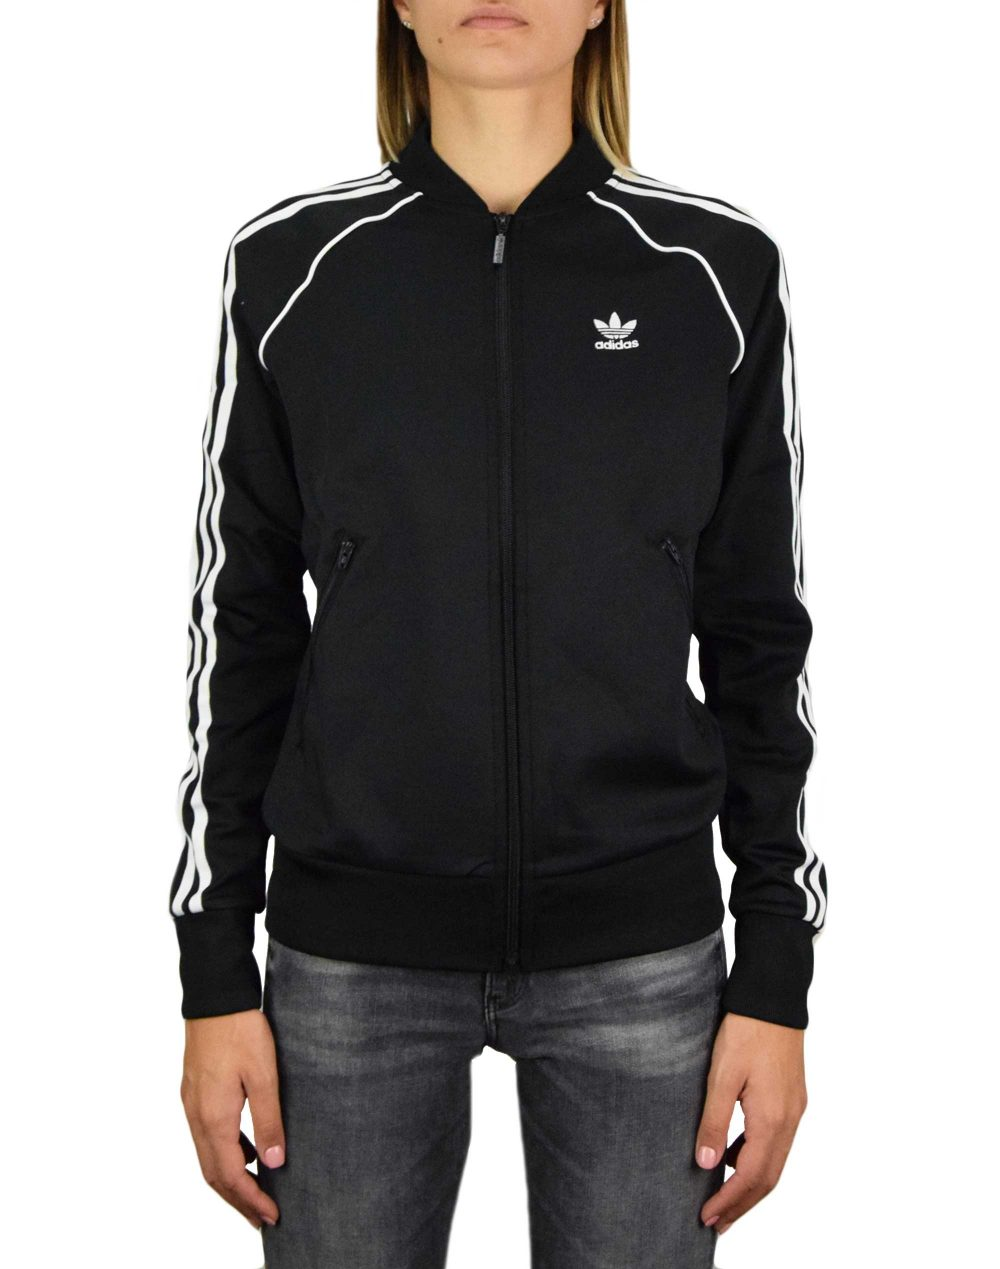 Adidas SST Primeblue Track Top (GD2374) Black/White